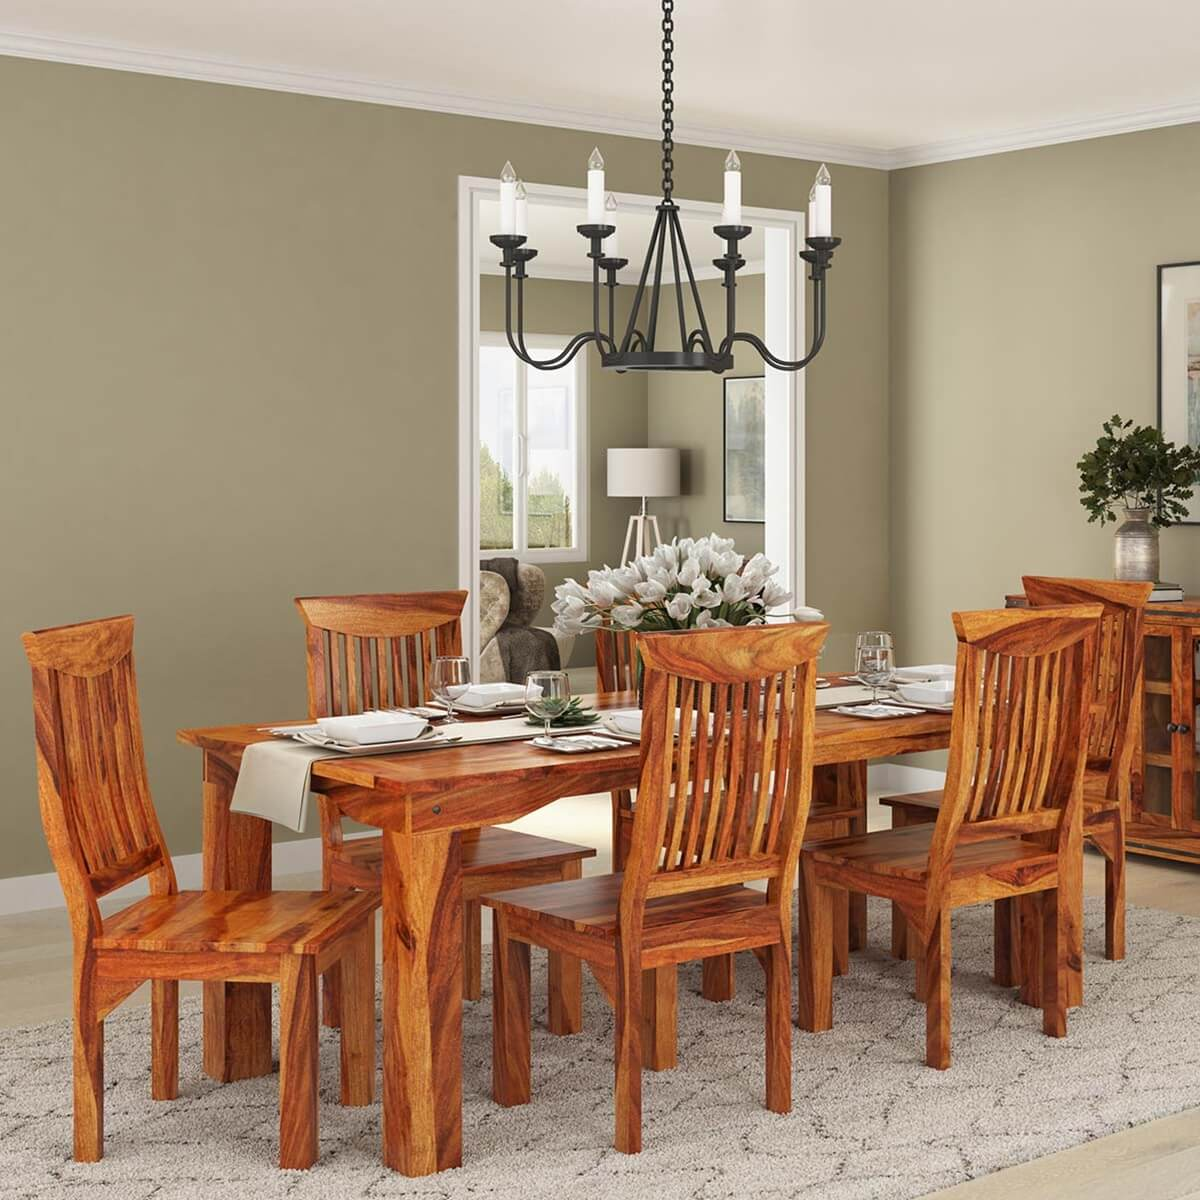 Unfinished Dining Room Chairs Idaho Modern Rustic Solid Wood Dining Table And Chair Set